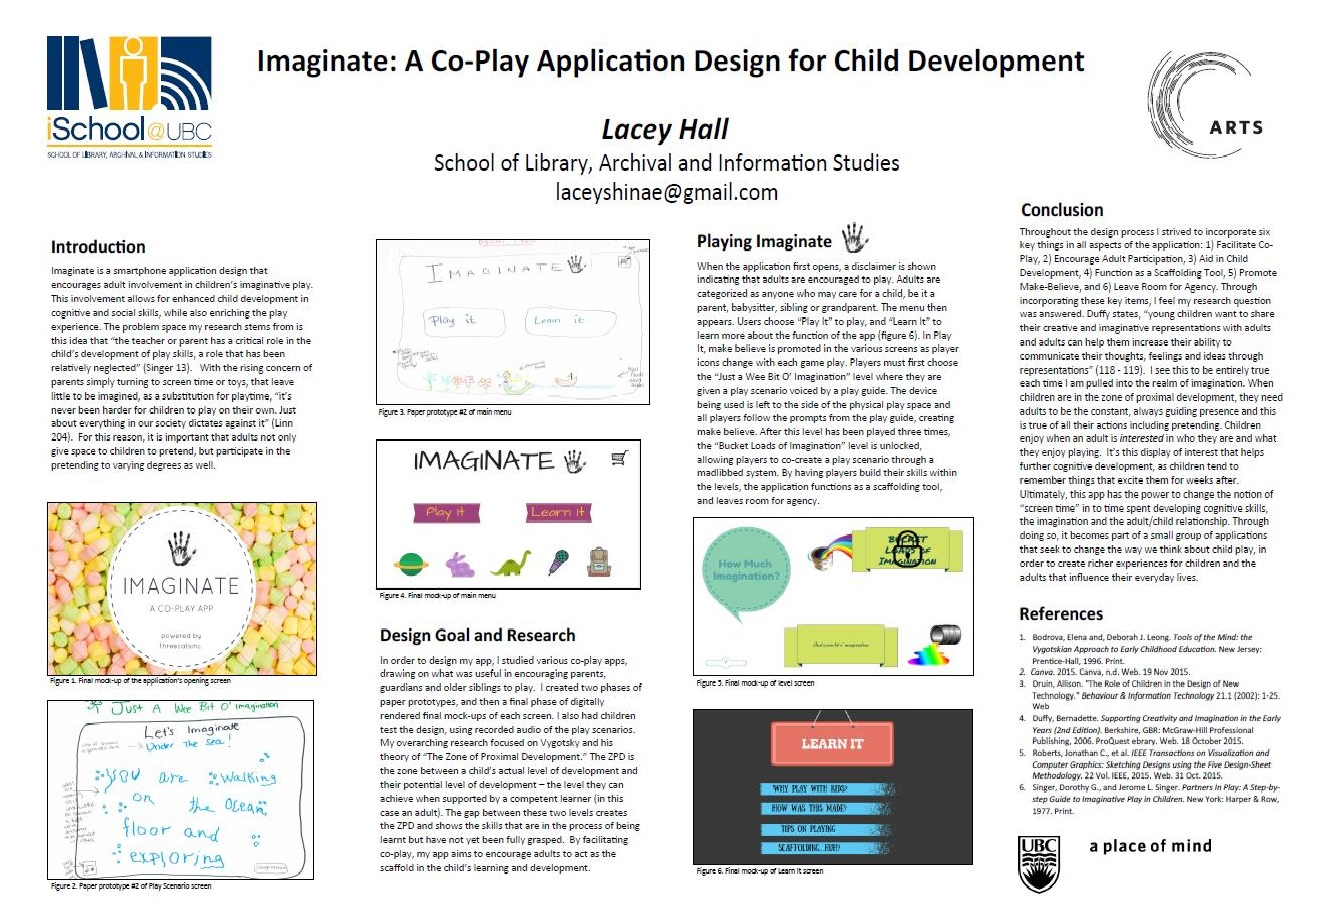 Research day ubc ischool imaginate a co play application design for child development lacey hall 1betcityfo Choice Image